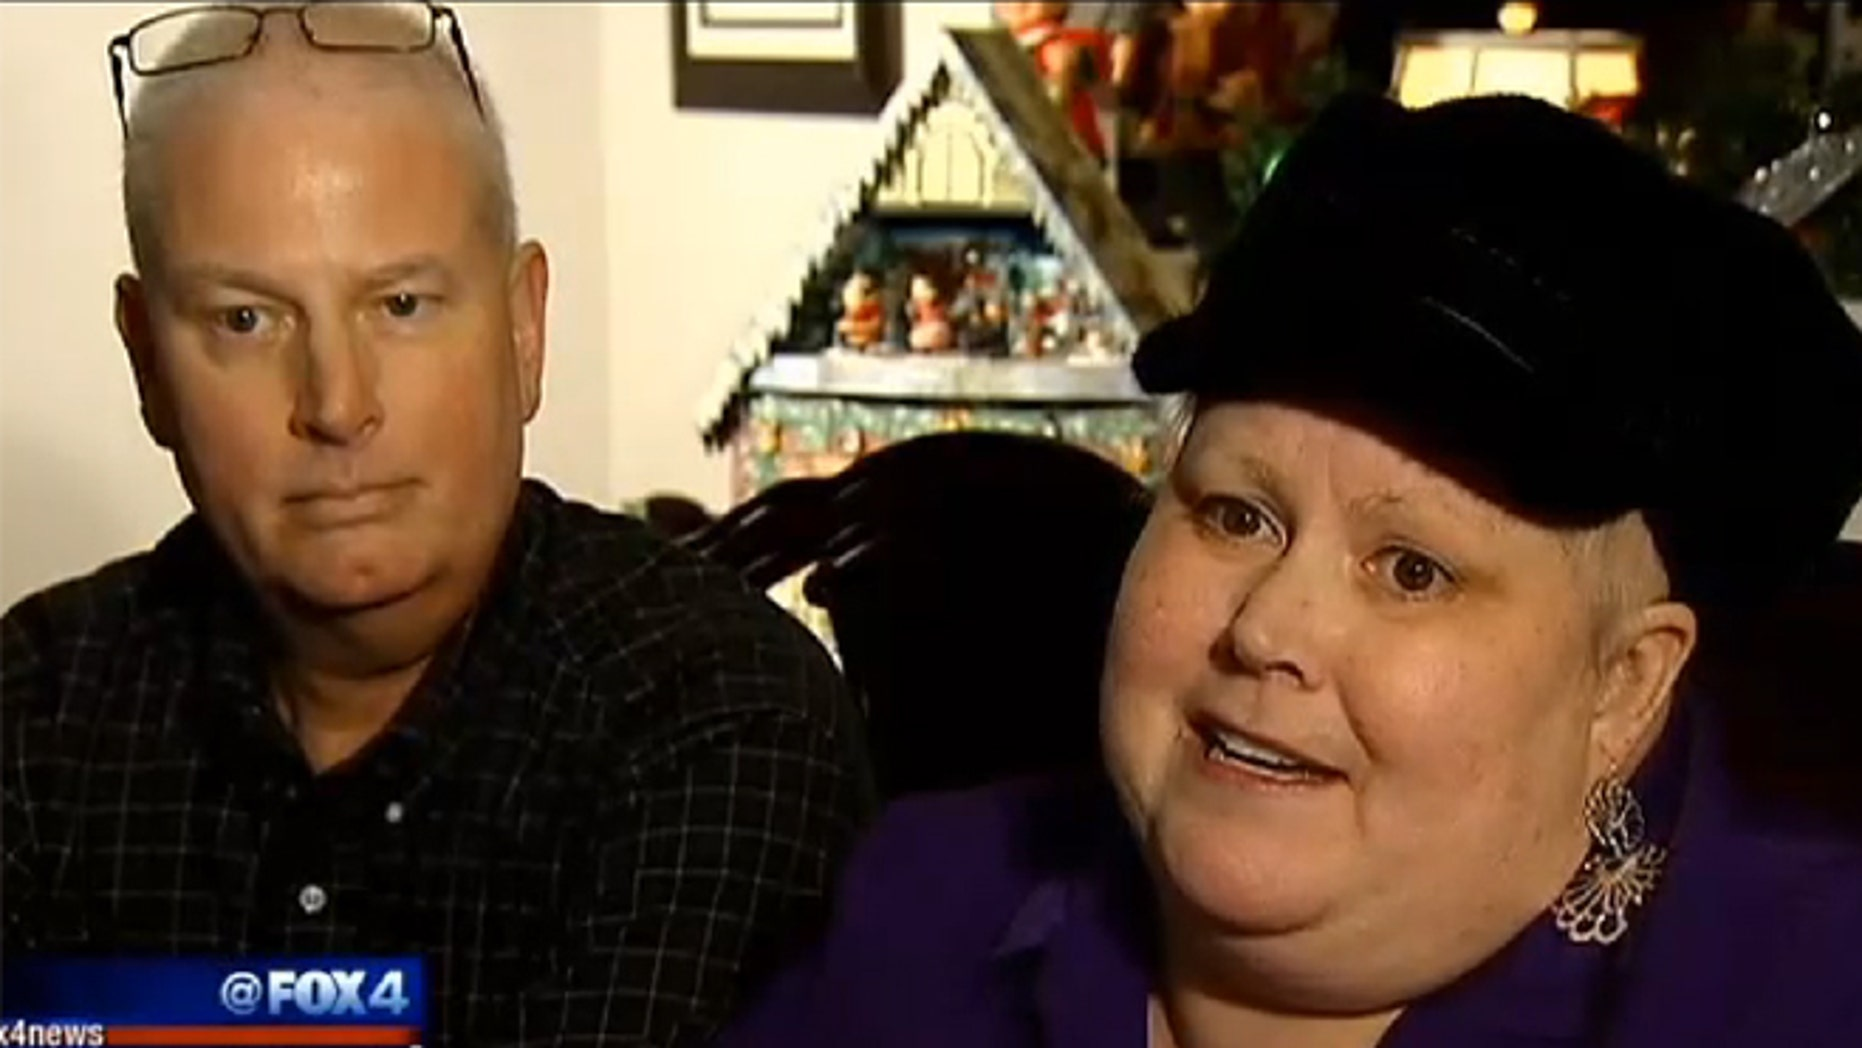 Dwight and Jennifer Mullen are both battling cancer as they raise their three children.